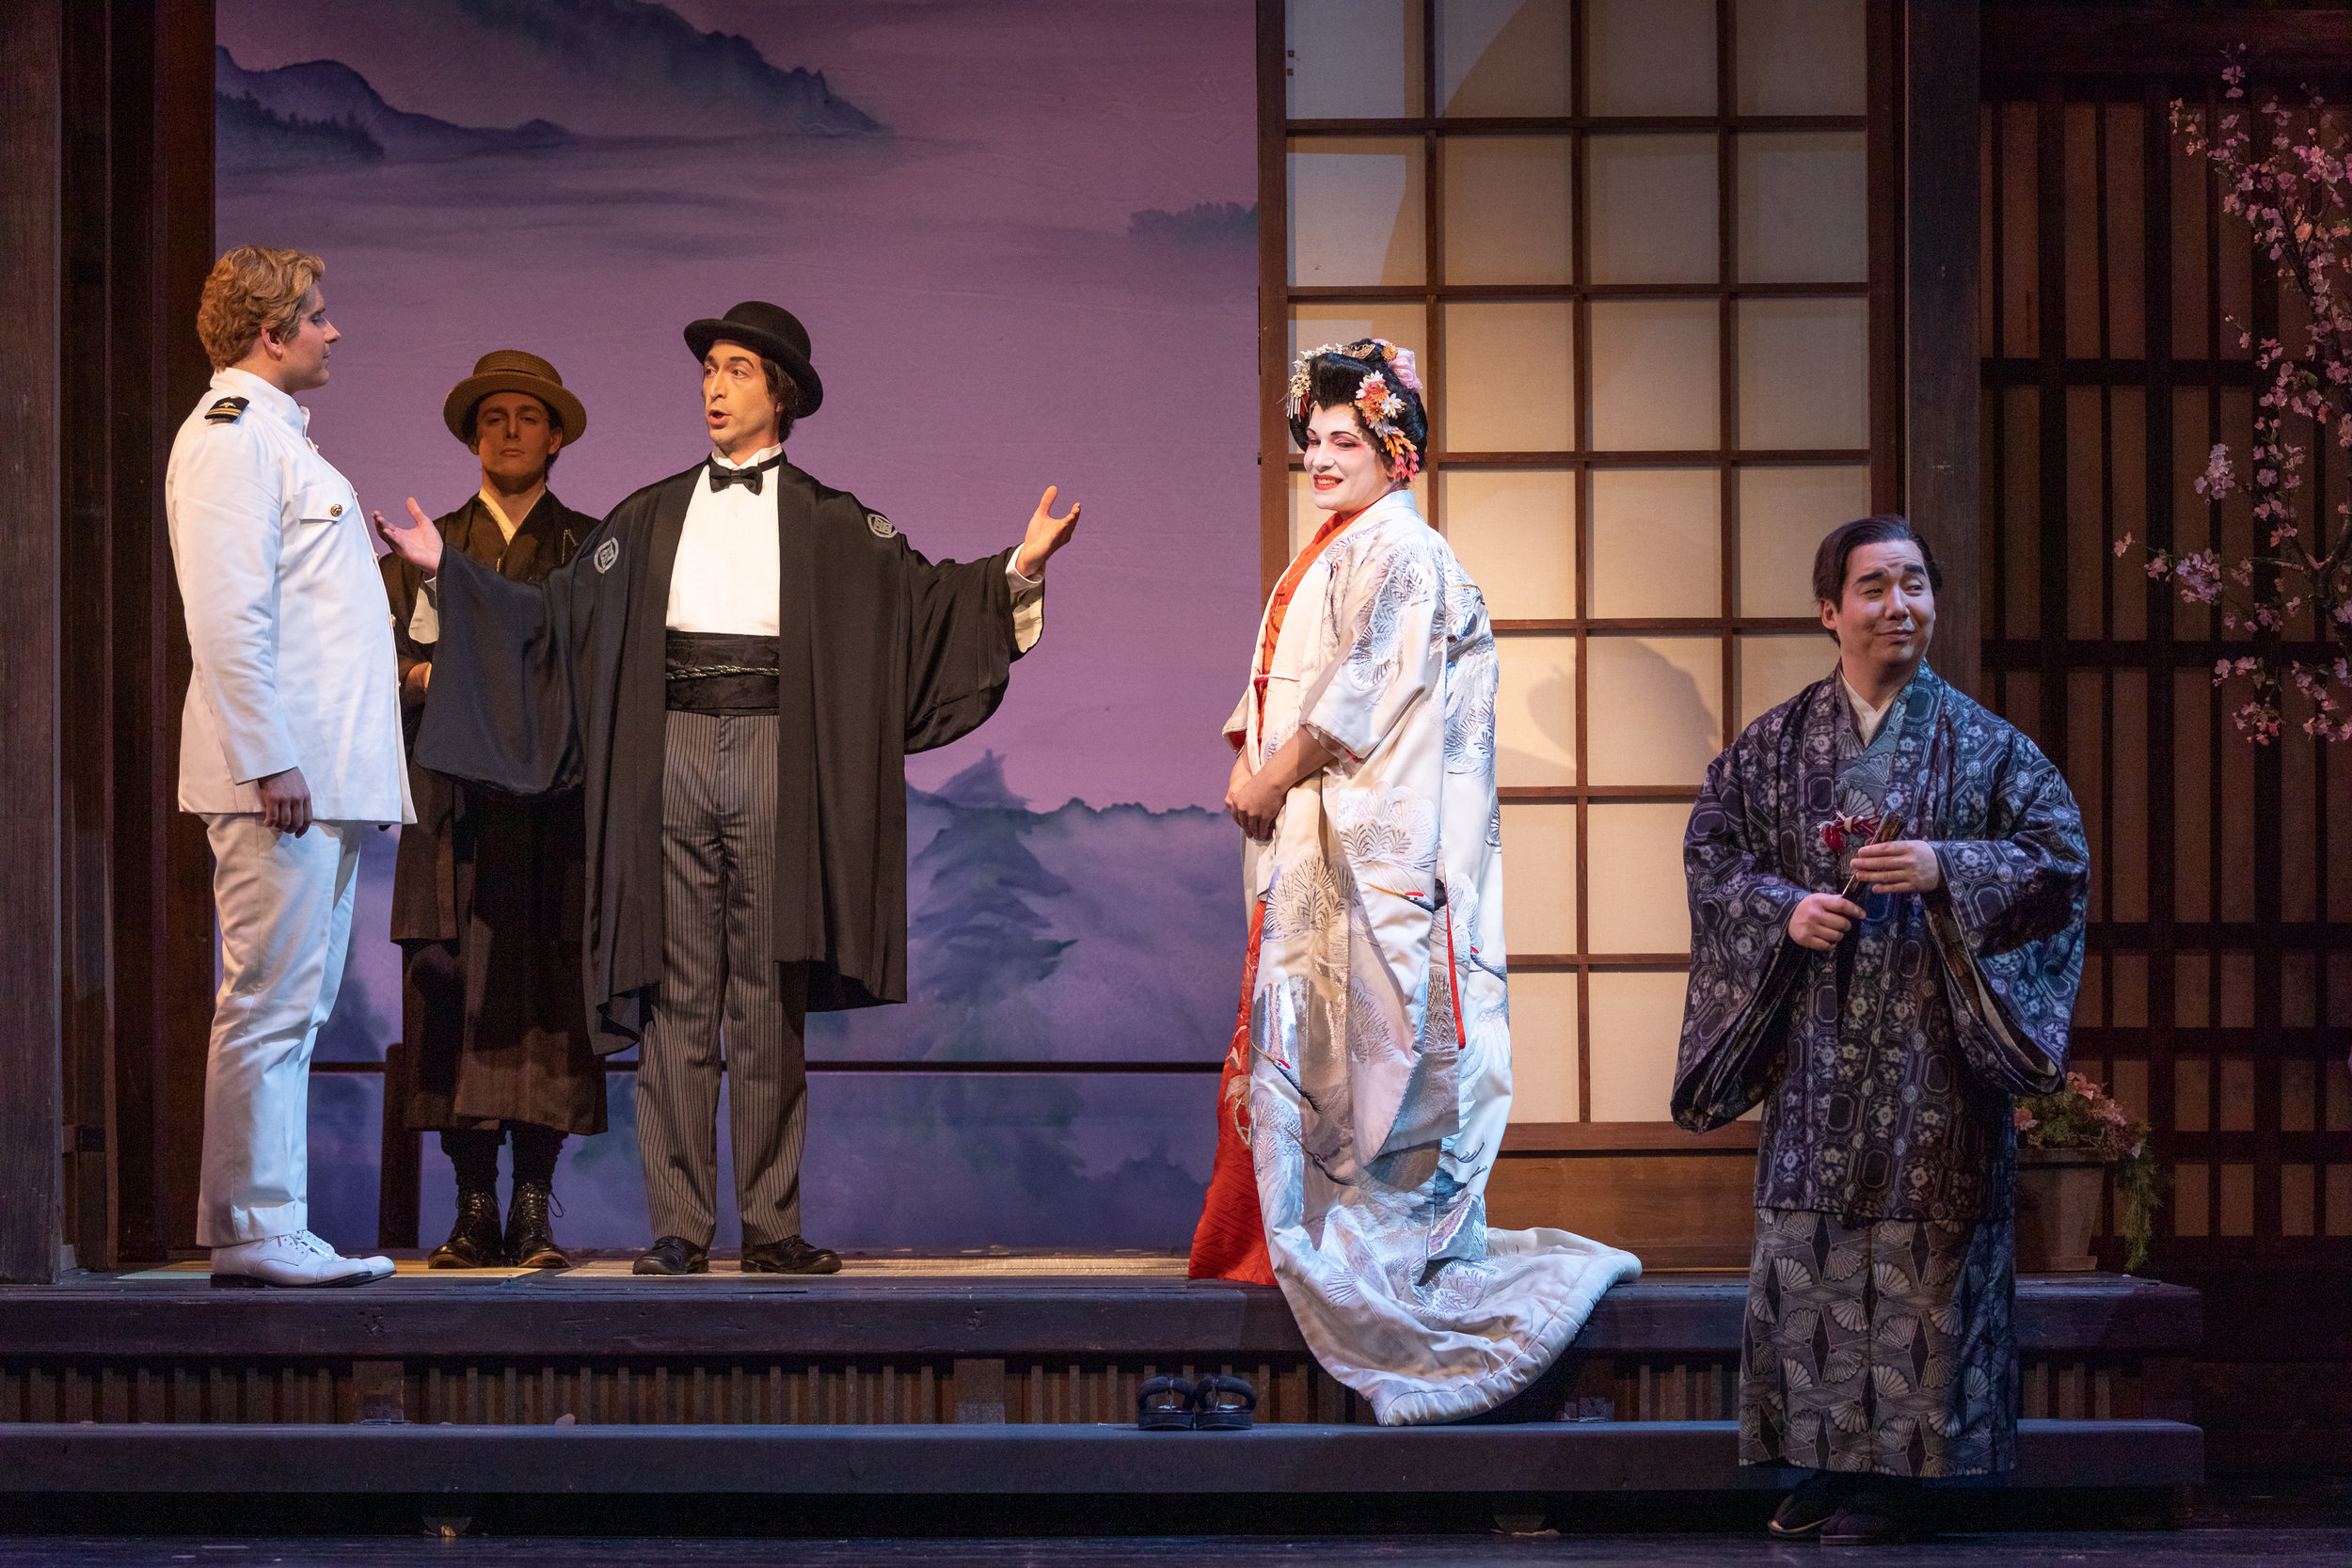 Matthew Vickers as Pinkerton, Joseph Hubbard as the Imperial Commissioner performing the ceremony, Danielle Pastin as Cio-Cio-San, and Julius Ahn as Goro, the marraige broker. Photo by Ben Schill Photography; courtesy of Virginia Opera.